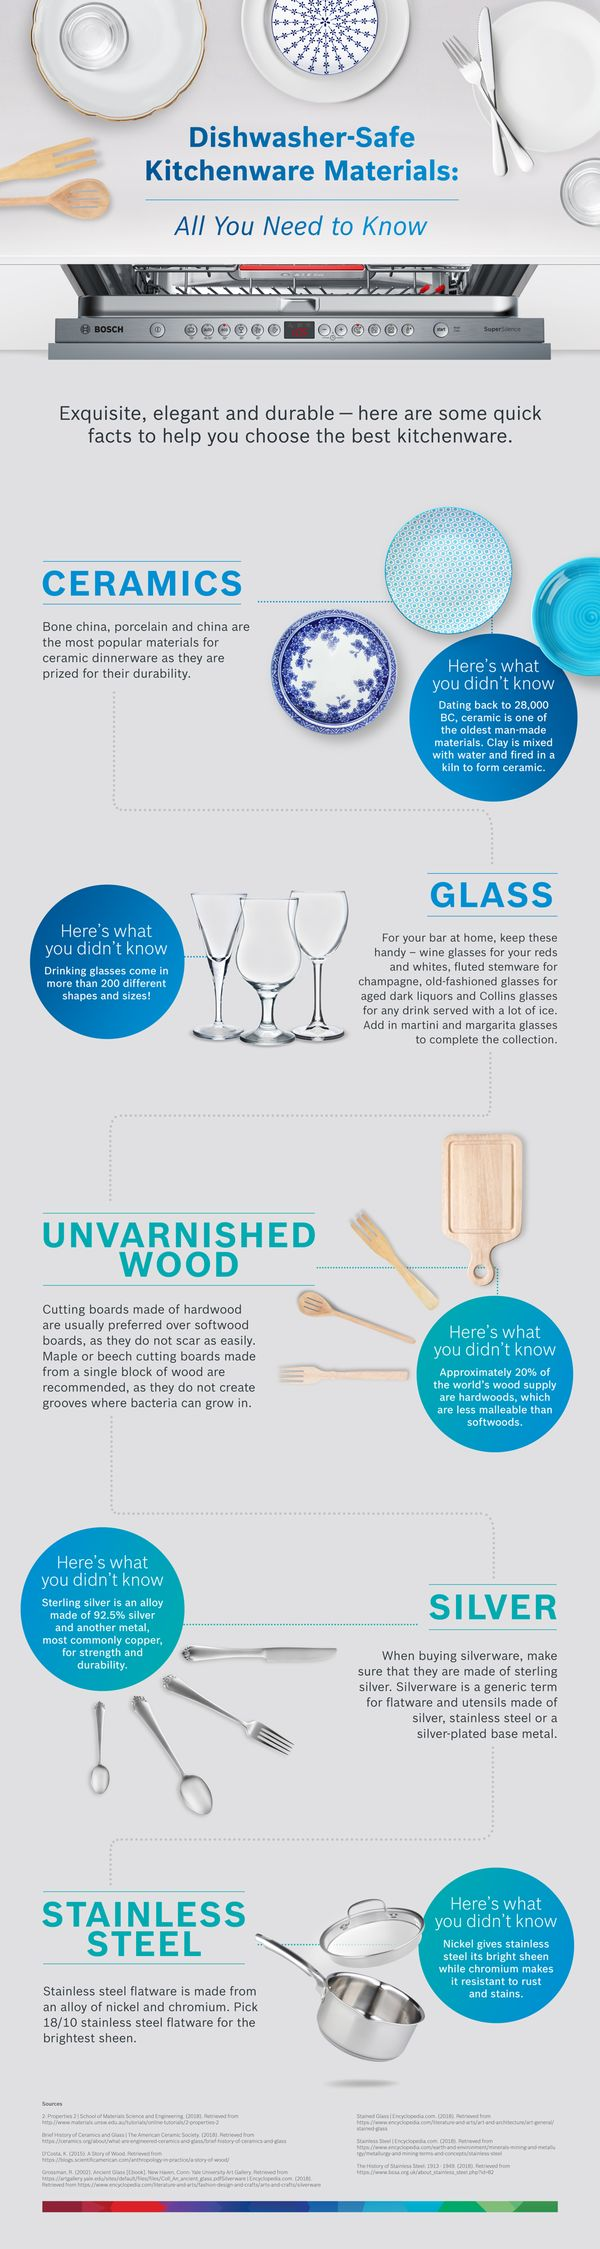 Dishwasher-Safe Kitchenware Materials: All You Need to Know